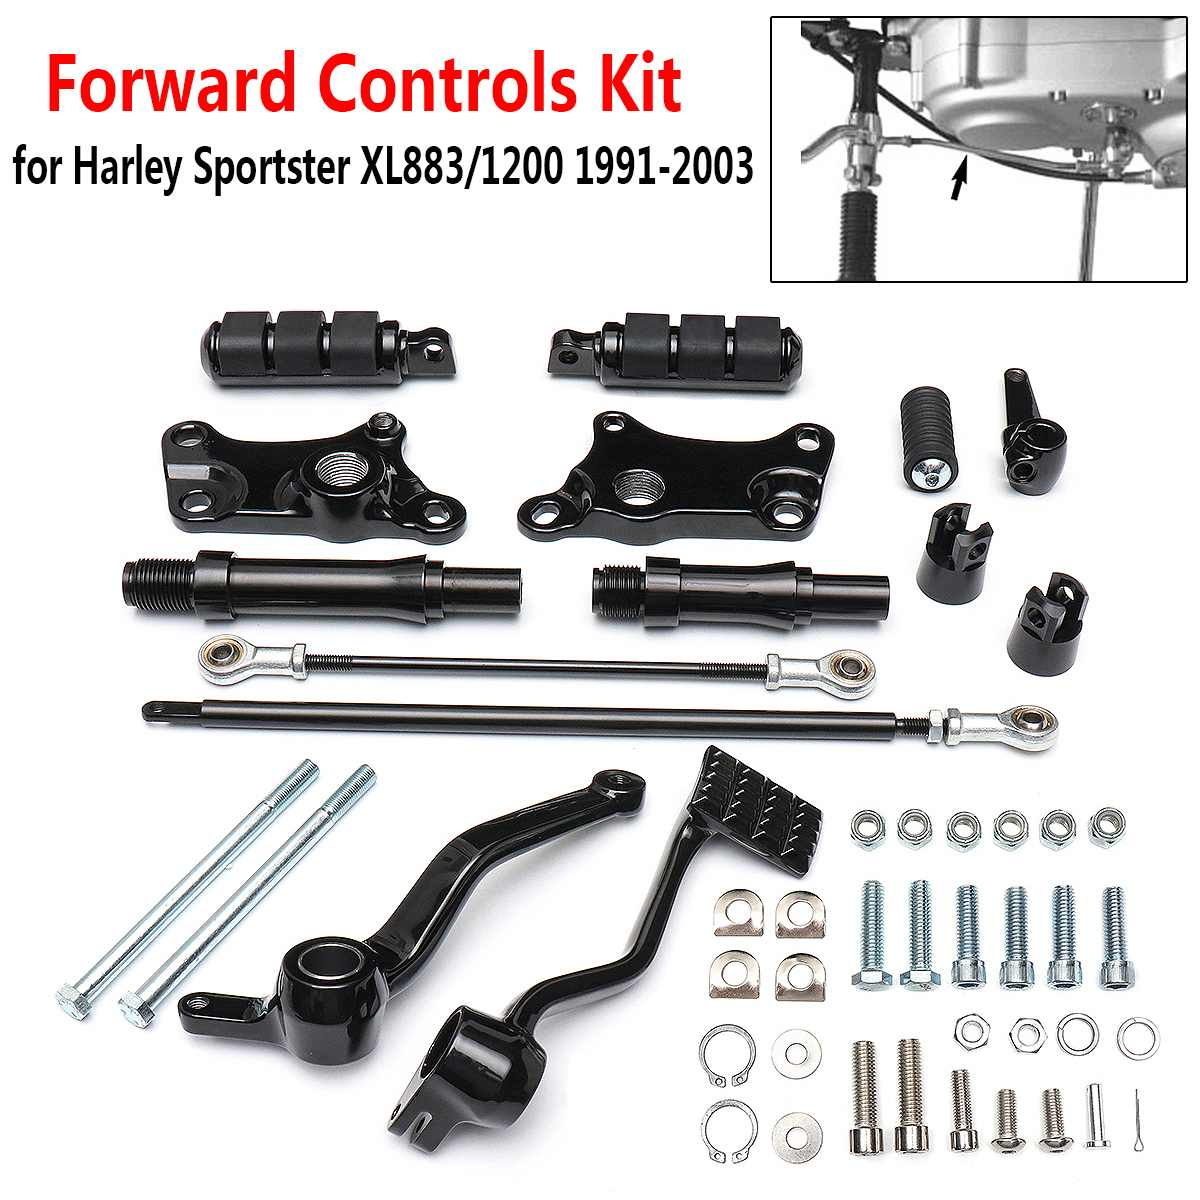 Forward Controls Pegs Levers Linkages for Harley Sportster XL883 XL1200 1991-2003 Models Motorcycle Foot Rests KitForward Controls Pegs Levers Linkages for Harley Sportster XL883 XL1200 1991-2003 Models Motorcycle Foot Rests Kit